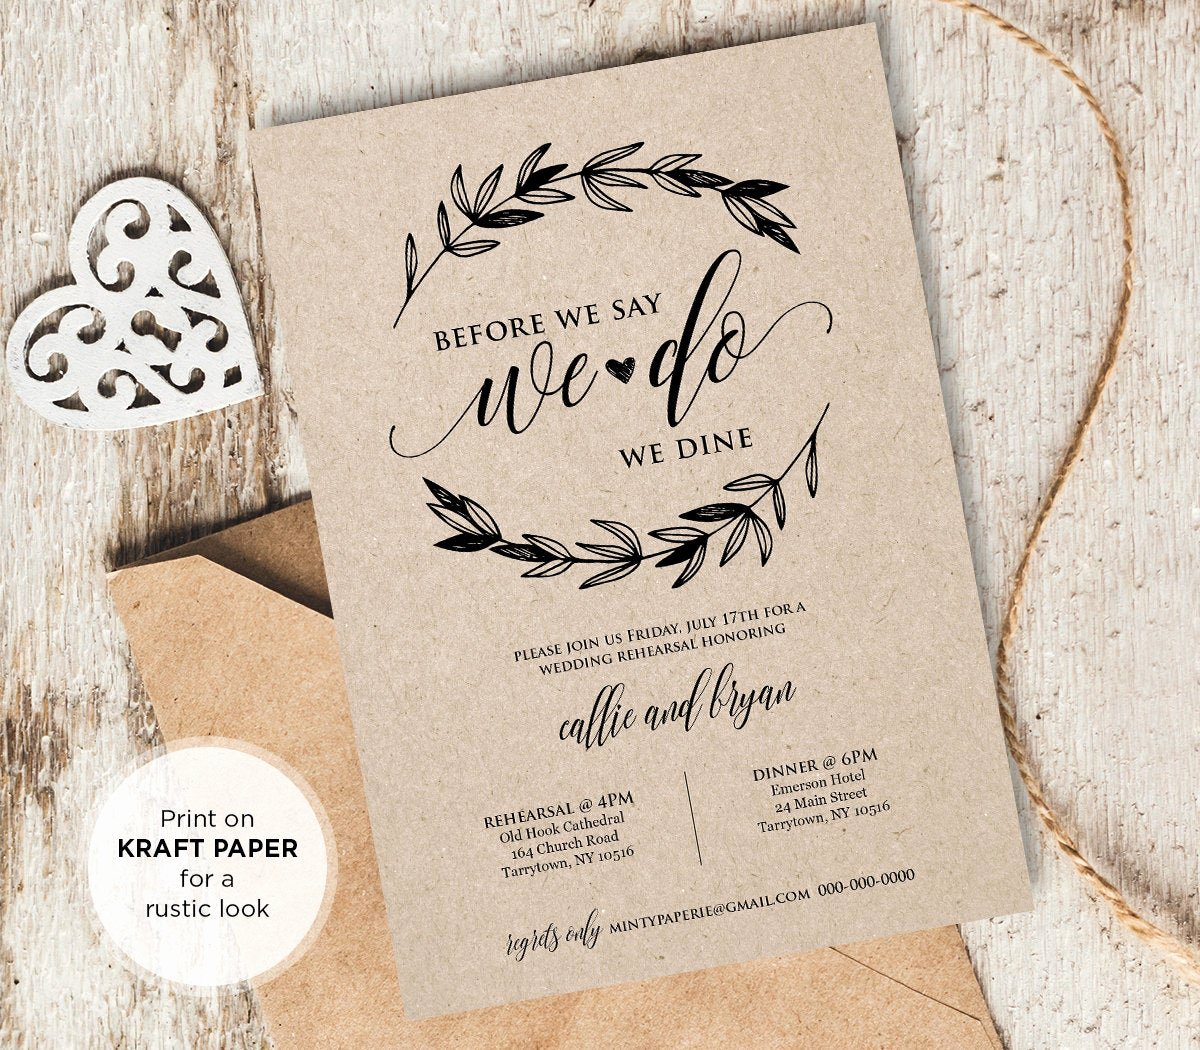 Wedding Rehearsal Dinner Invitation Template Lovely Rustic Wedding Rehearsal Invitation Instant Download